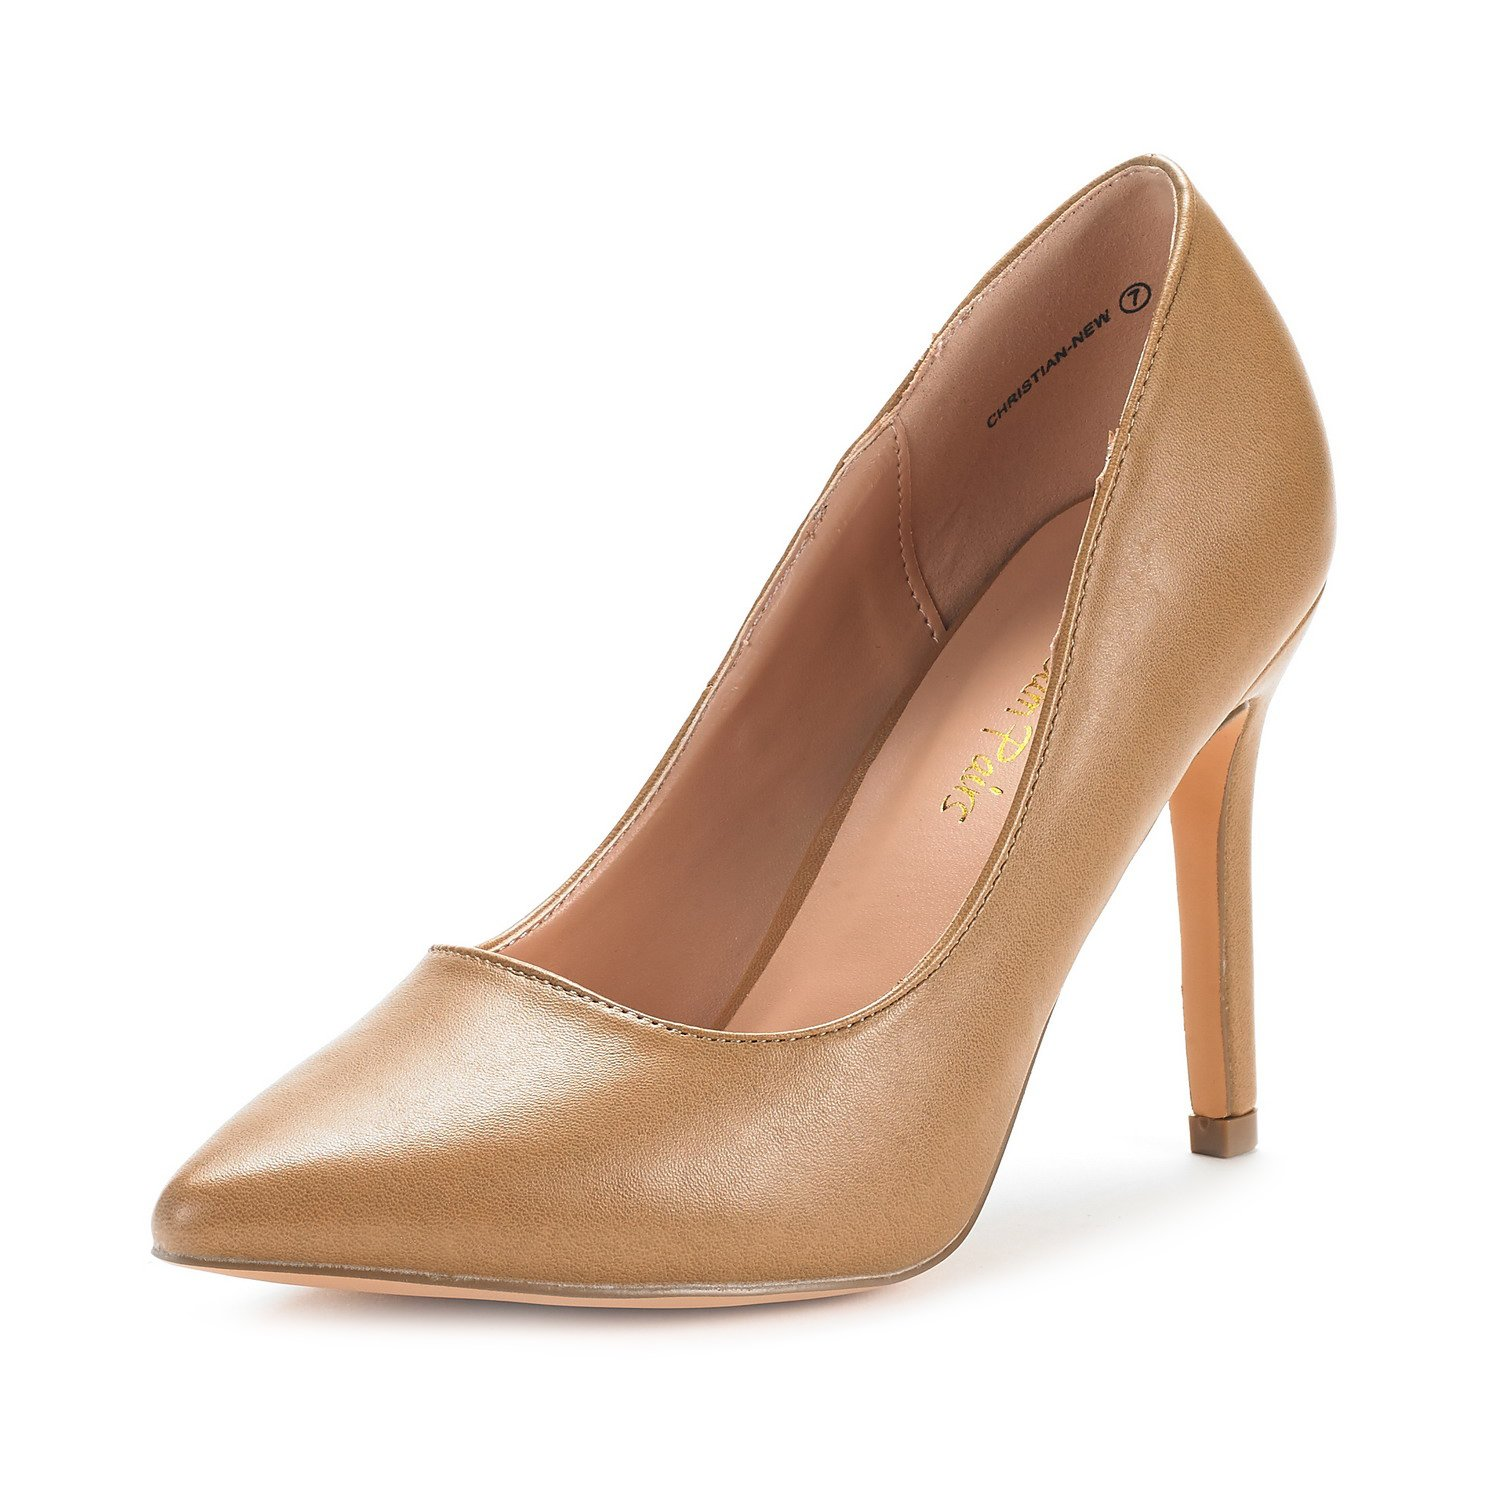 DREAM PAIRS Women's Christian-New Nude Pu High Heel Pump Shoes - 7 M US